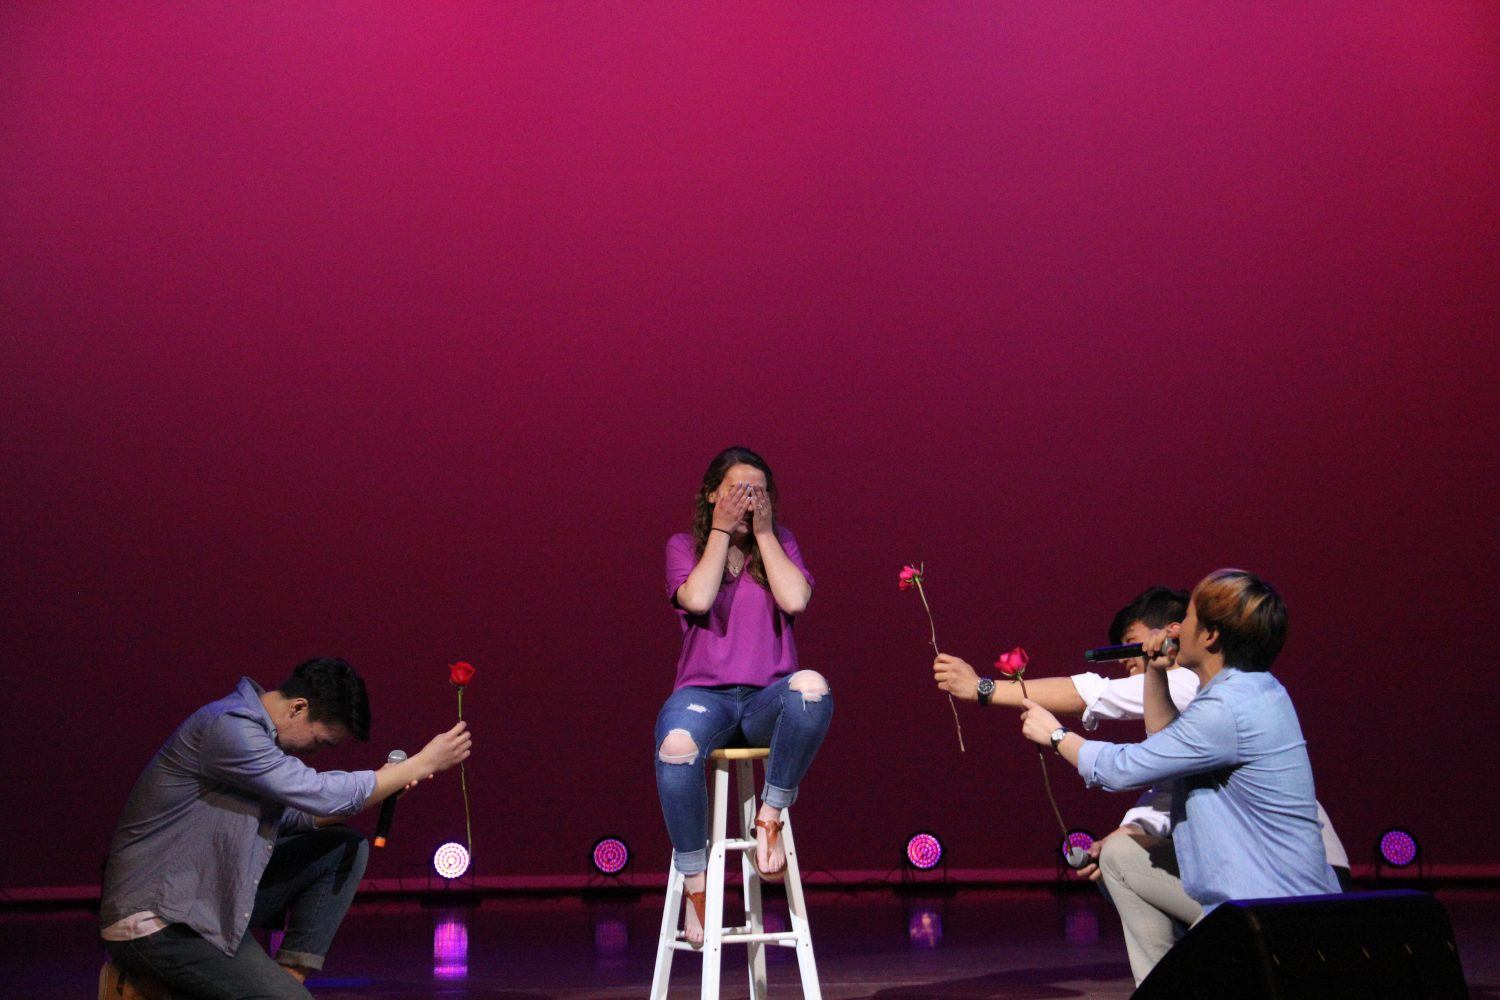 The+singing%2Frapping+group+Naughty+Boys+serenade+a+student+randomly+picked+to+come+on+stage.+Photo+by+Michael+Hsu.